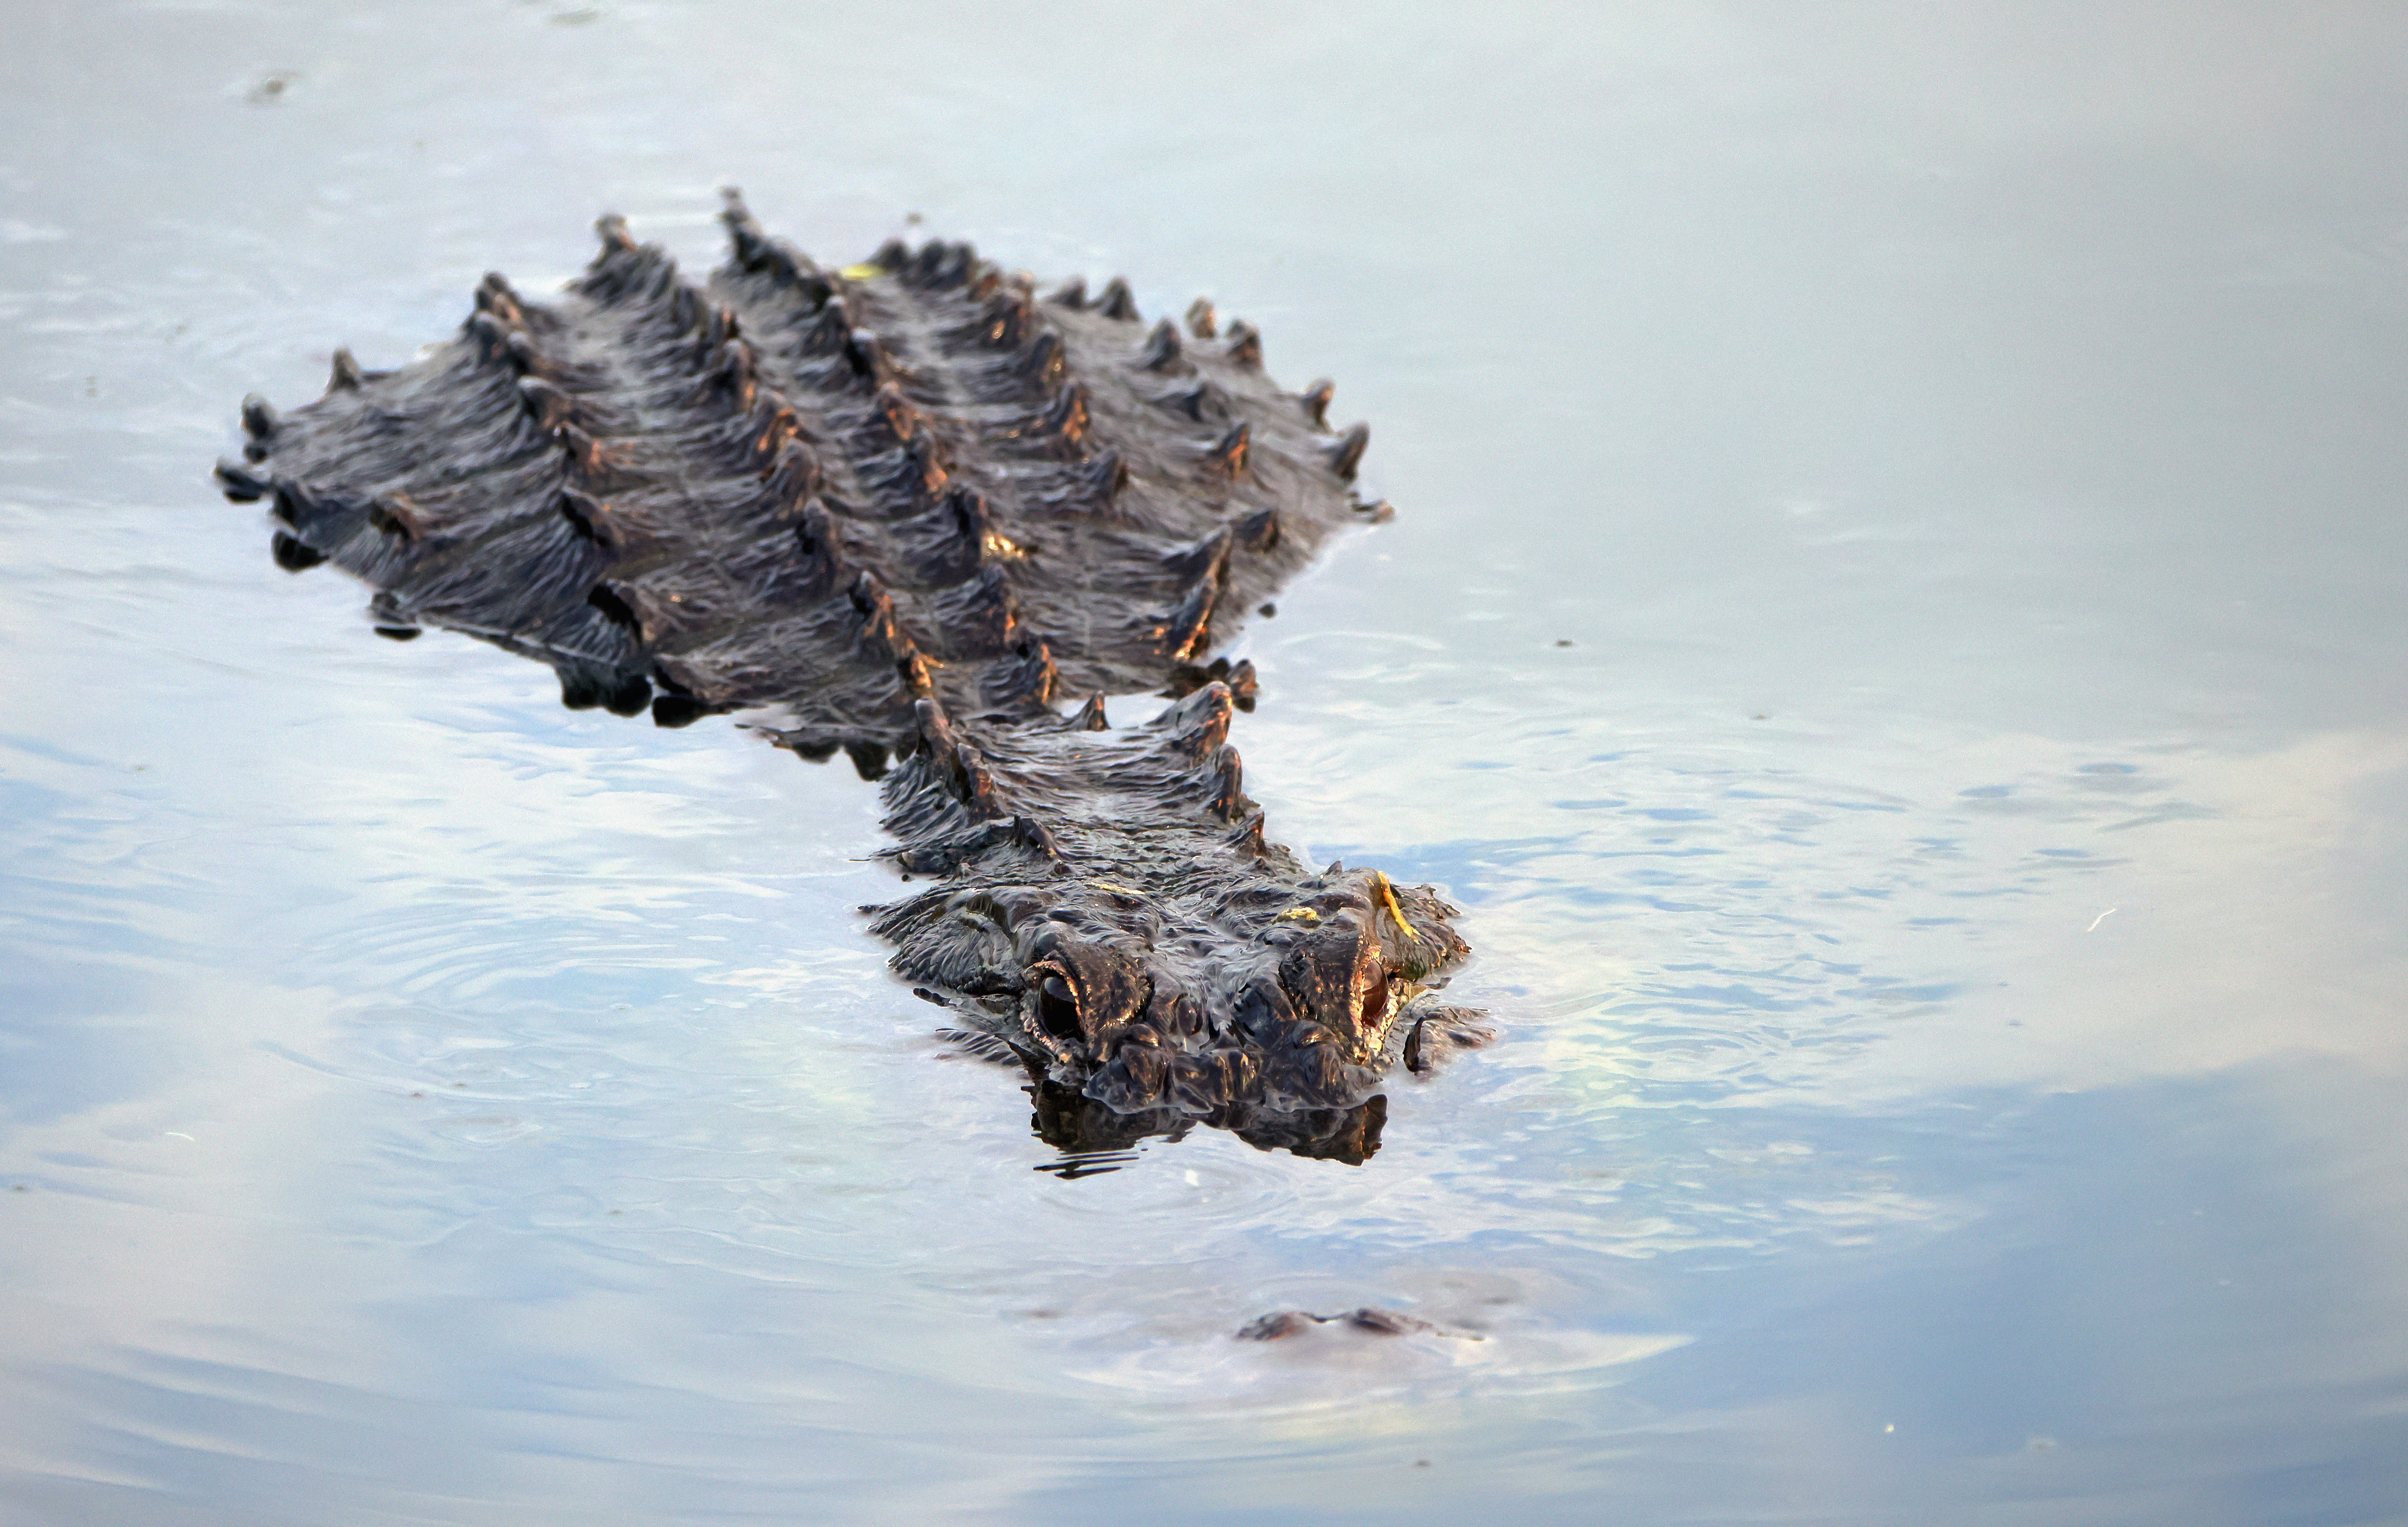 DELRAY BEACH, FLORIDA - JULY 09: An alligator navigates the waterway at the Wakodahatchee Wetlands on July 09, 2021 in Delray Beach, Florida. (Photo by Bruce Bennett/Getty Images)